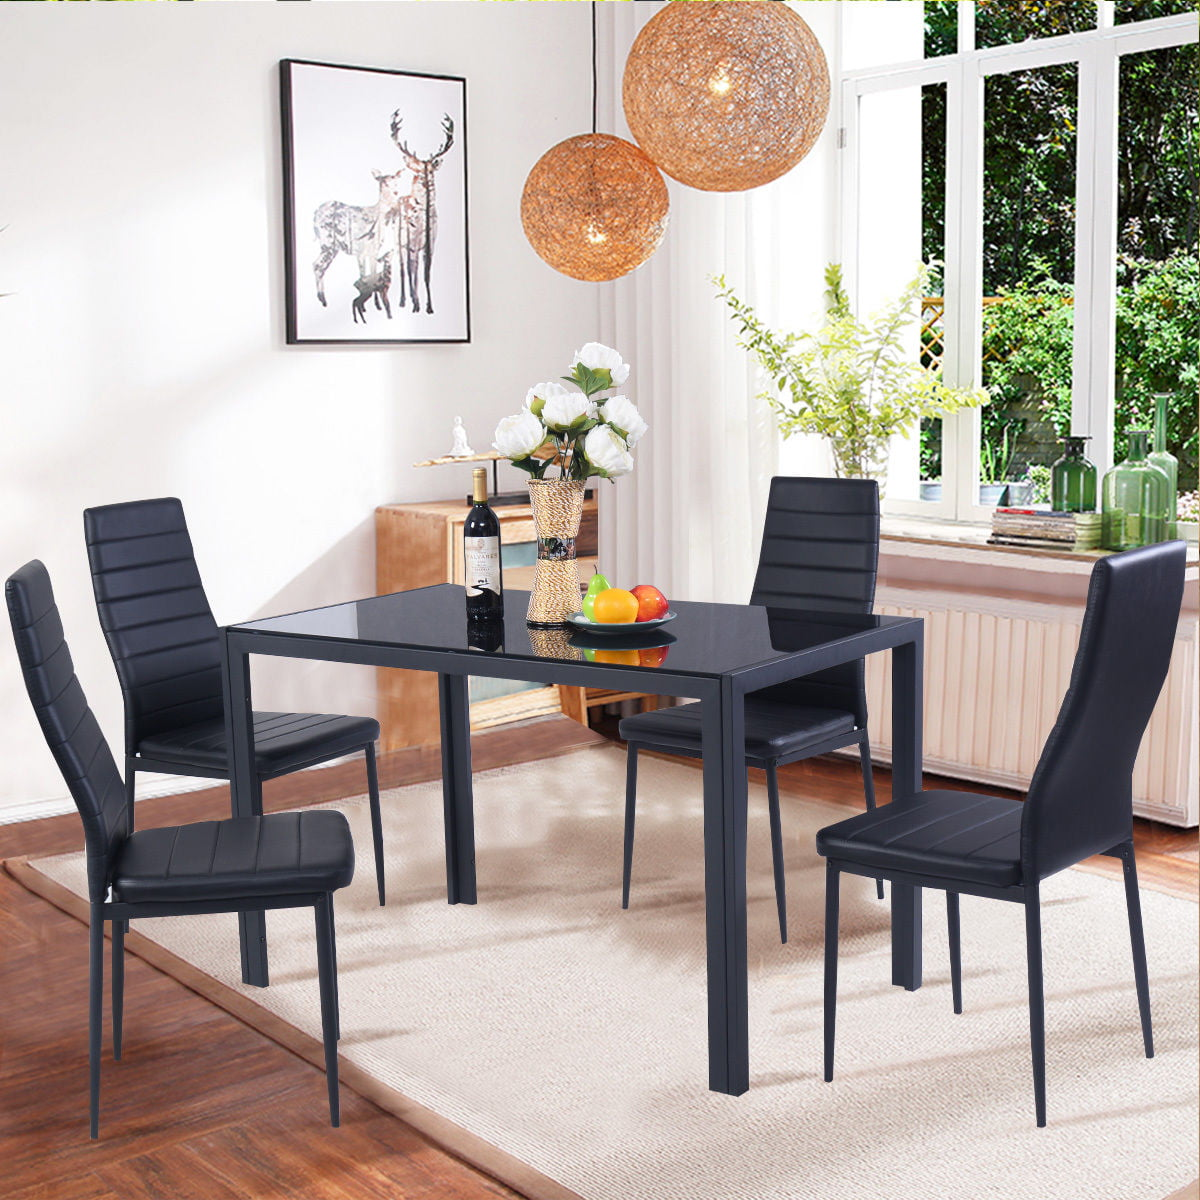 Costway 5 Piece Kitchen Dining Set Gl Metal Table And 4 Chairs Breakfast Furniture